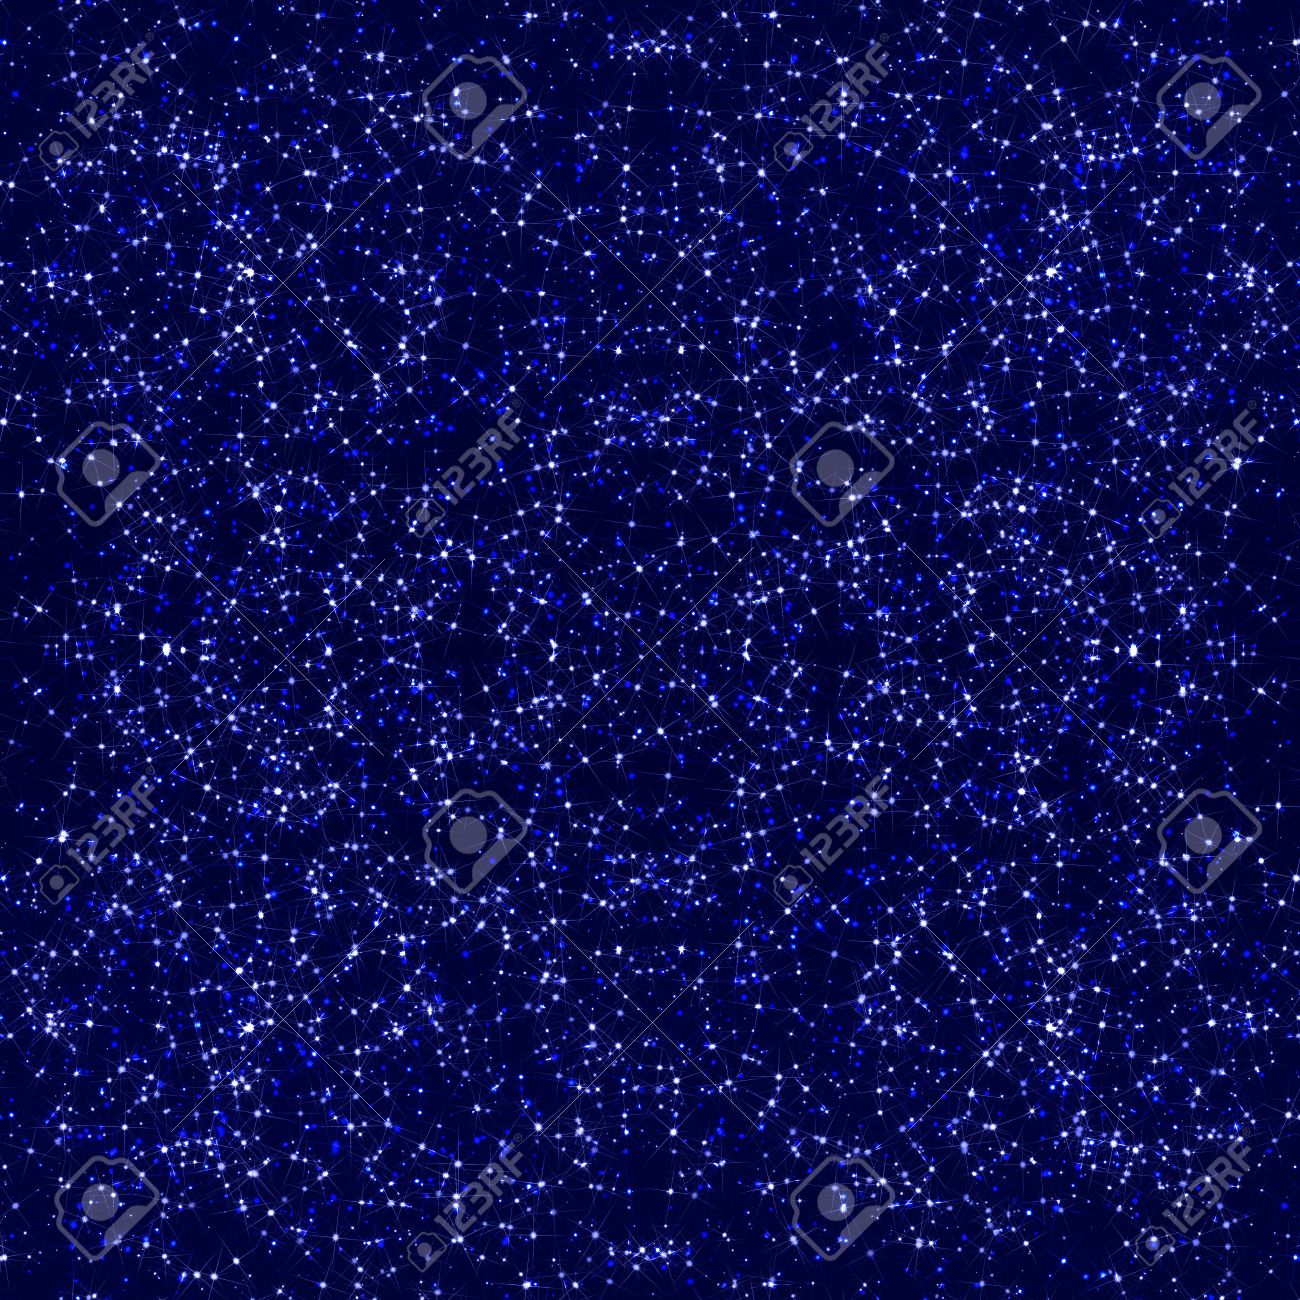 Night sky filled with stars on a dark blue background stock photo night sky filled with stars on a dark blue background stock photo 4386094 thecheapjerseys Gallery